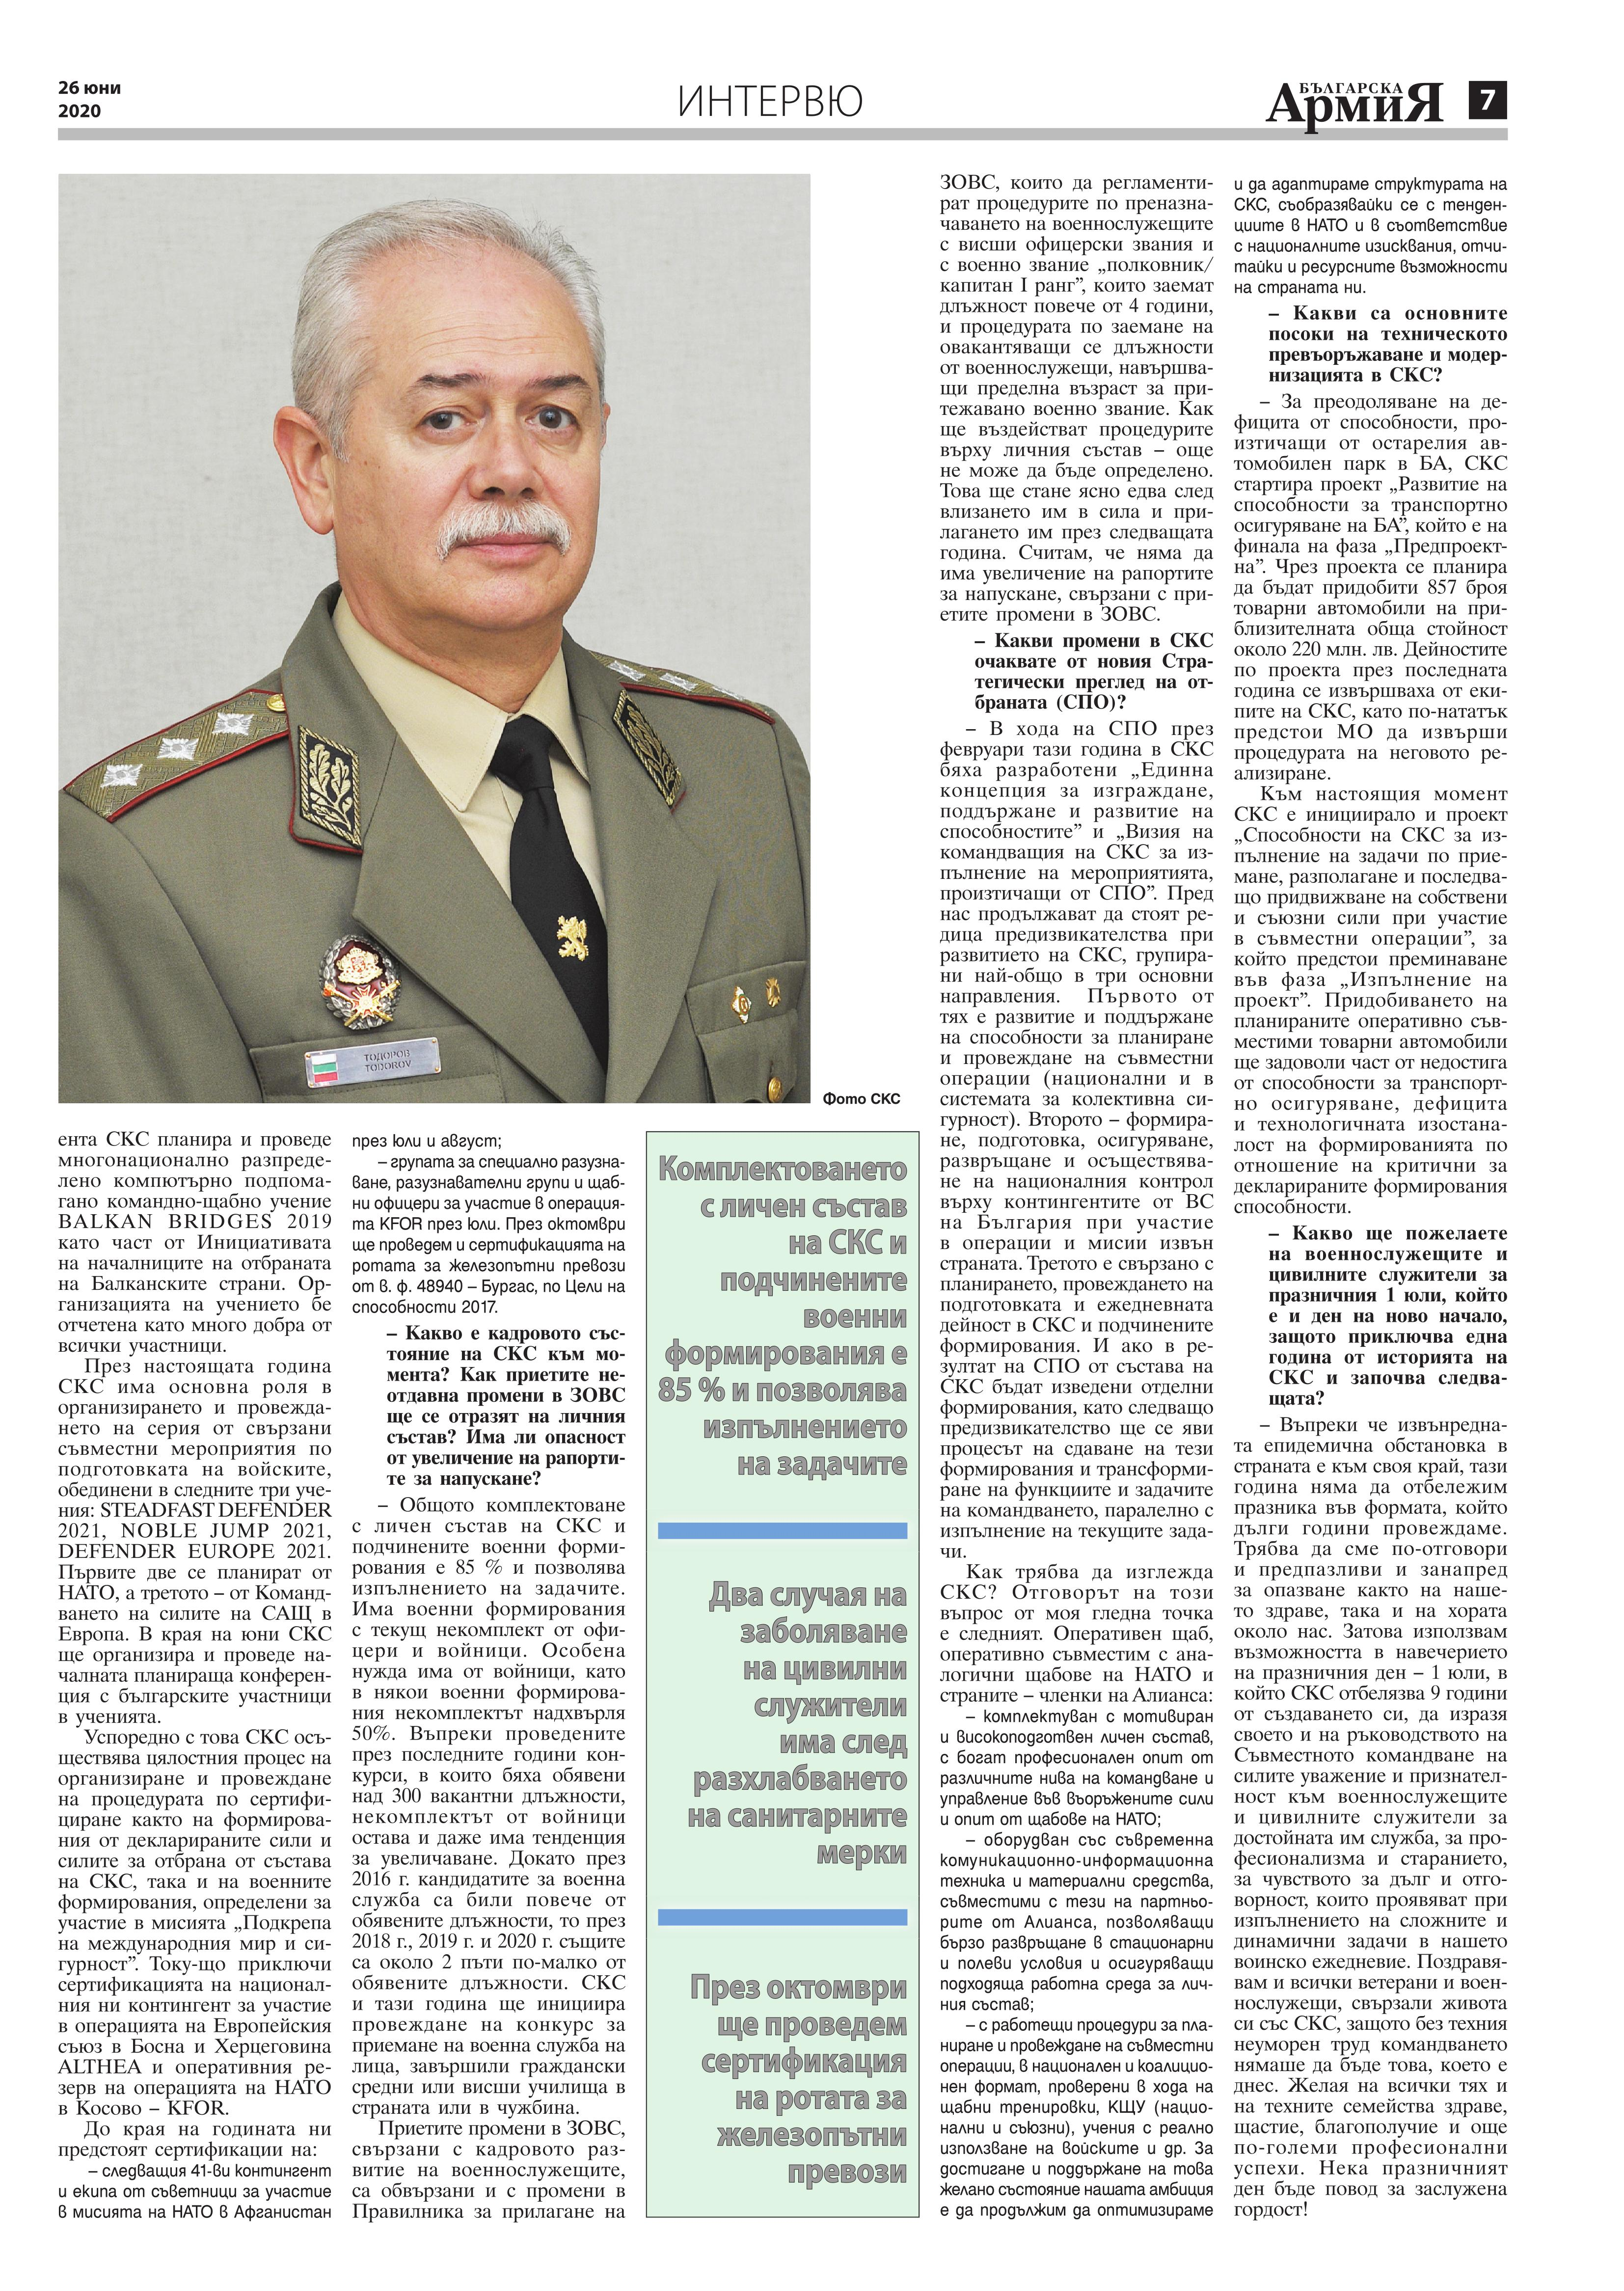 https://armymedia.bg/wp-content/uploads/2015/06/07.page1_-142.jpg